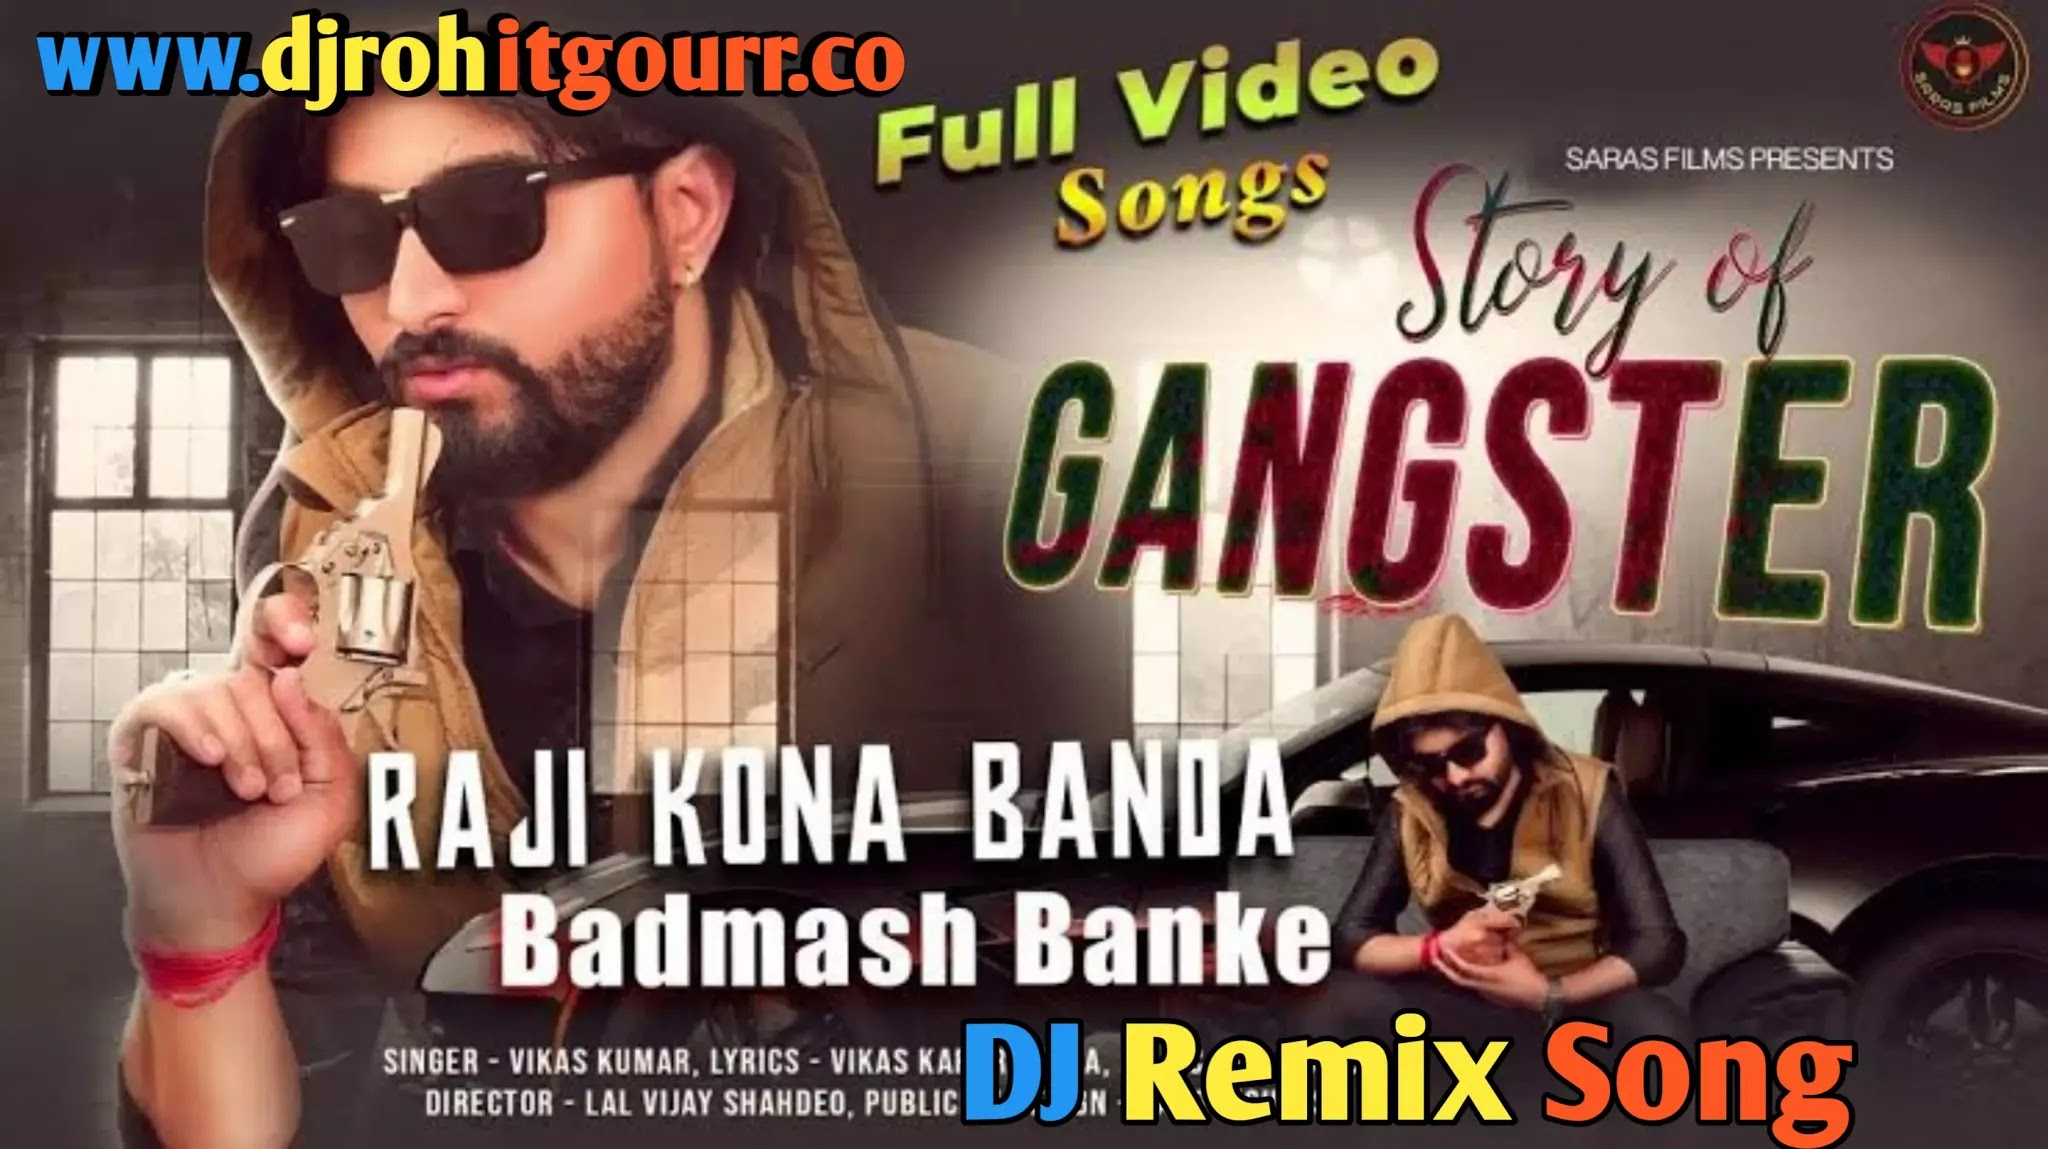 story of gangster Remix song | story of gangster Dj Remix Song